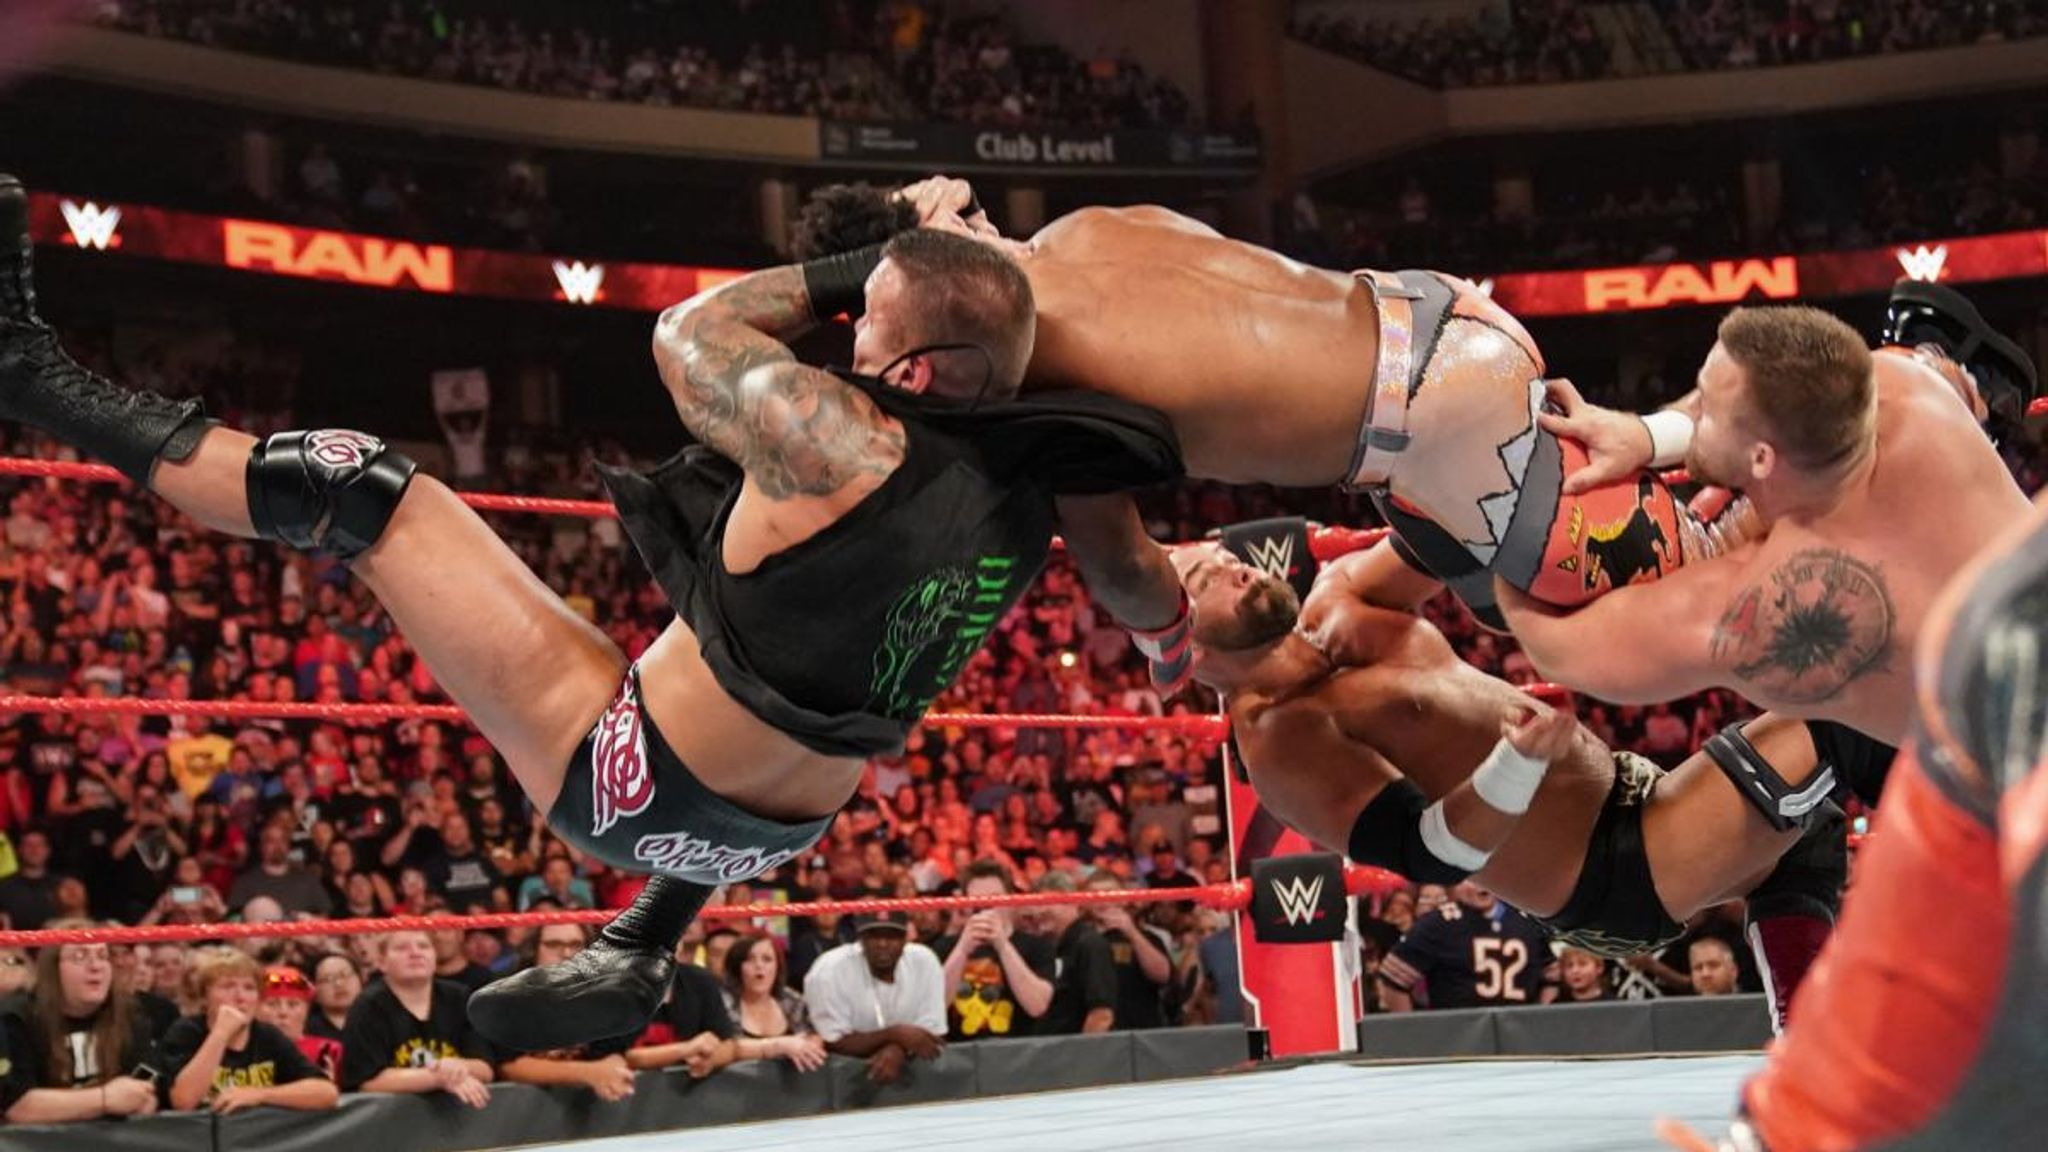 WWE Raw: This week's highlights from Monday night's show